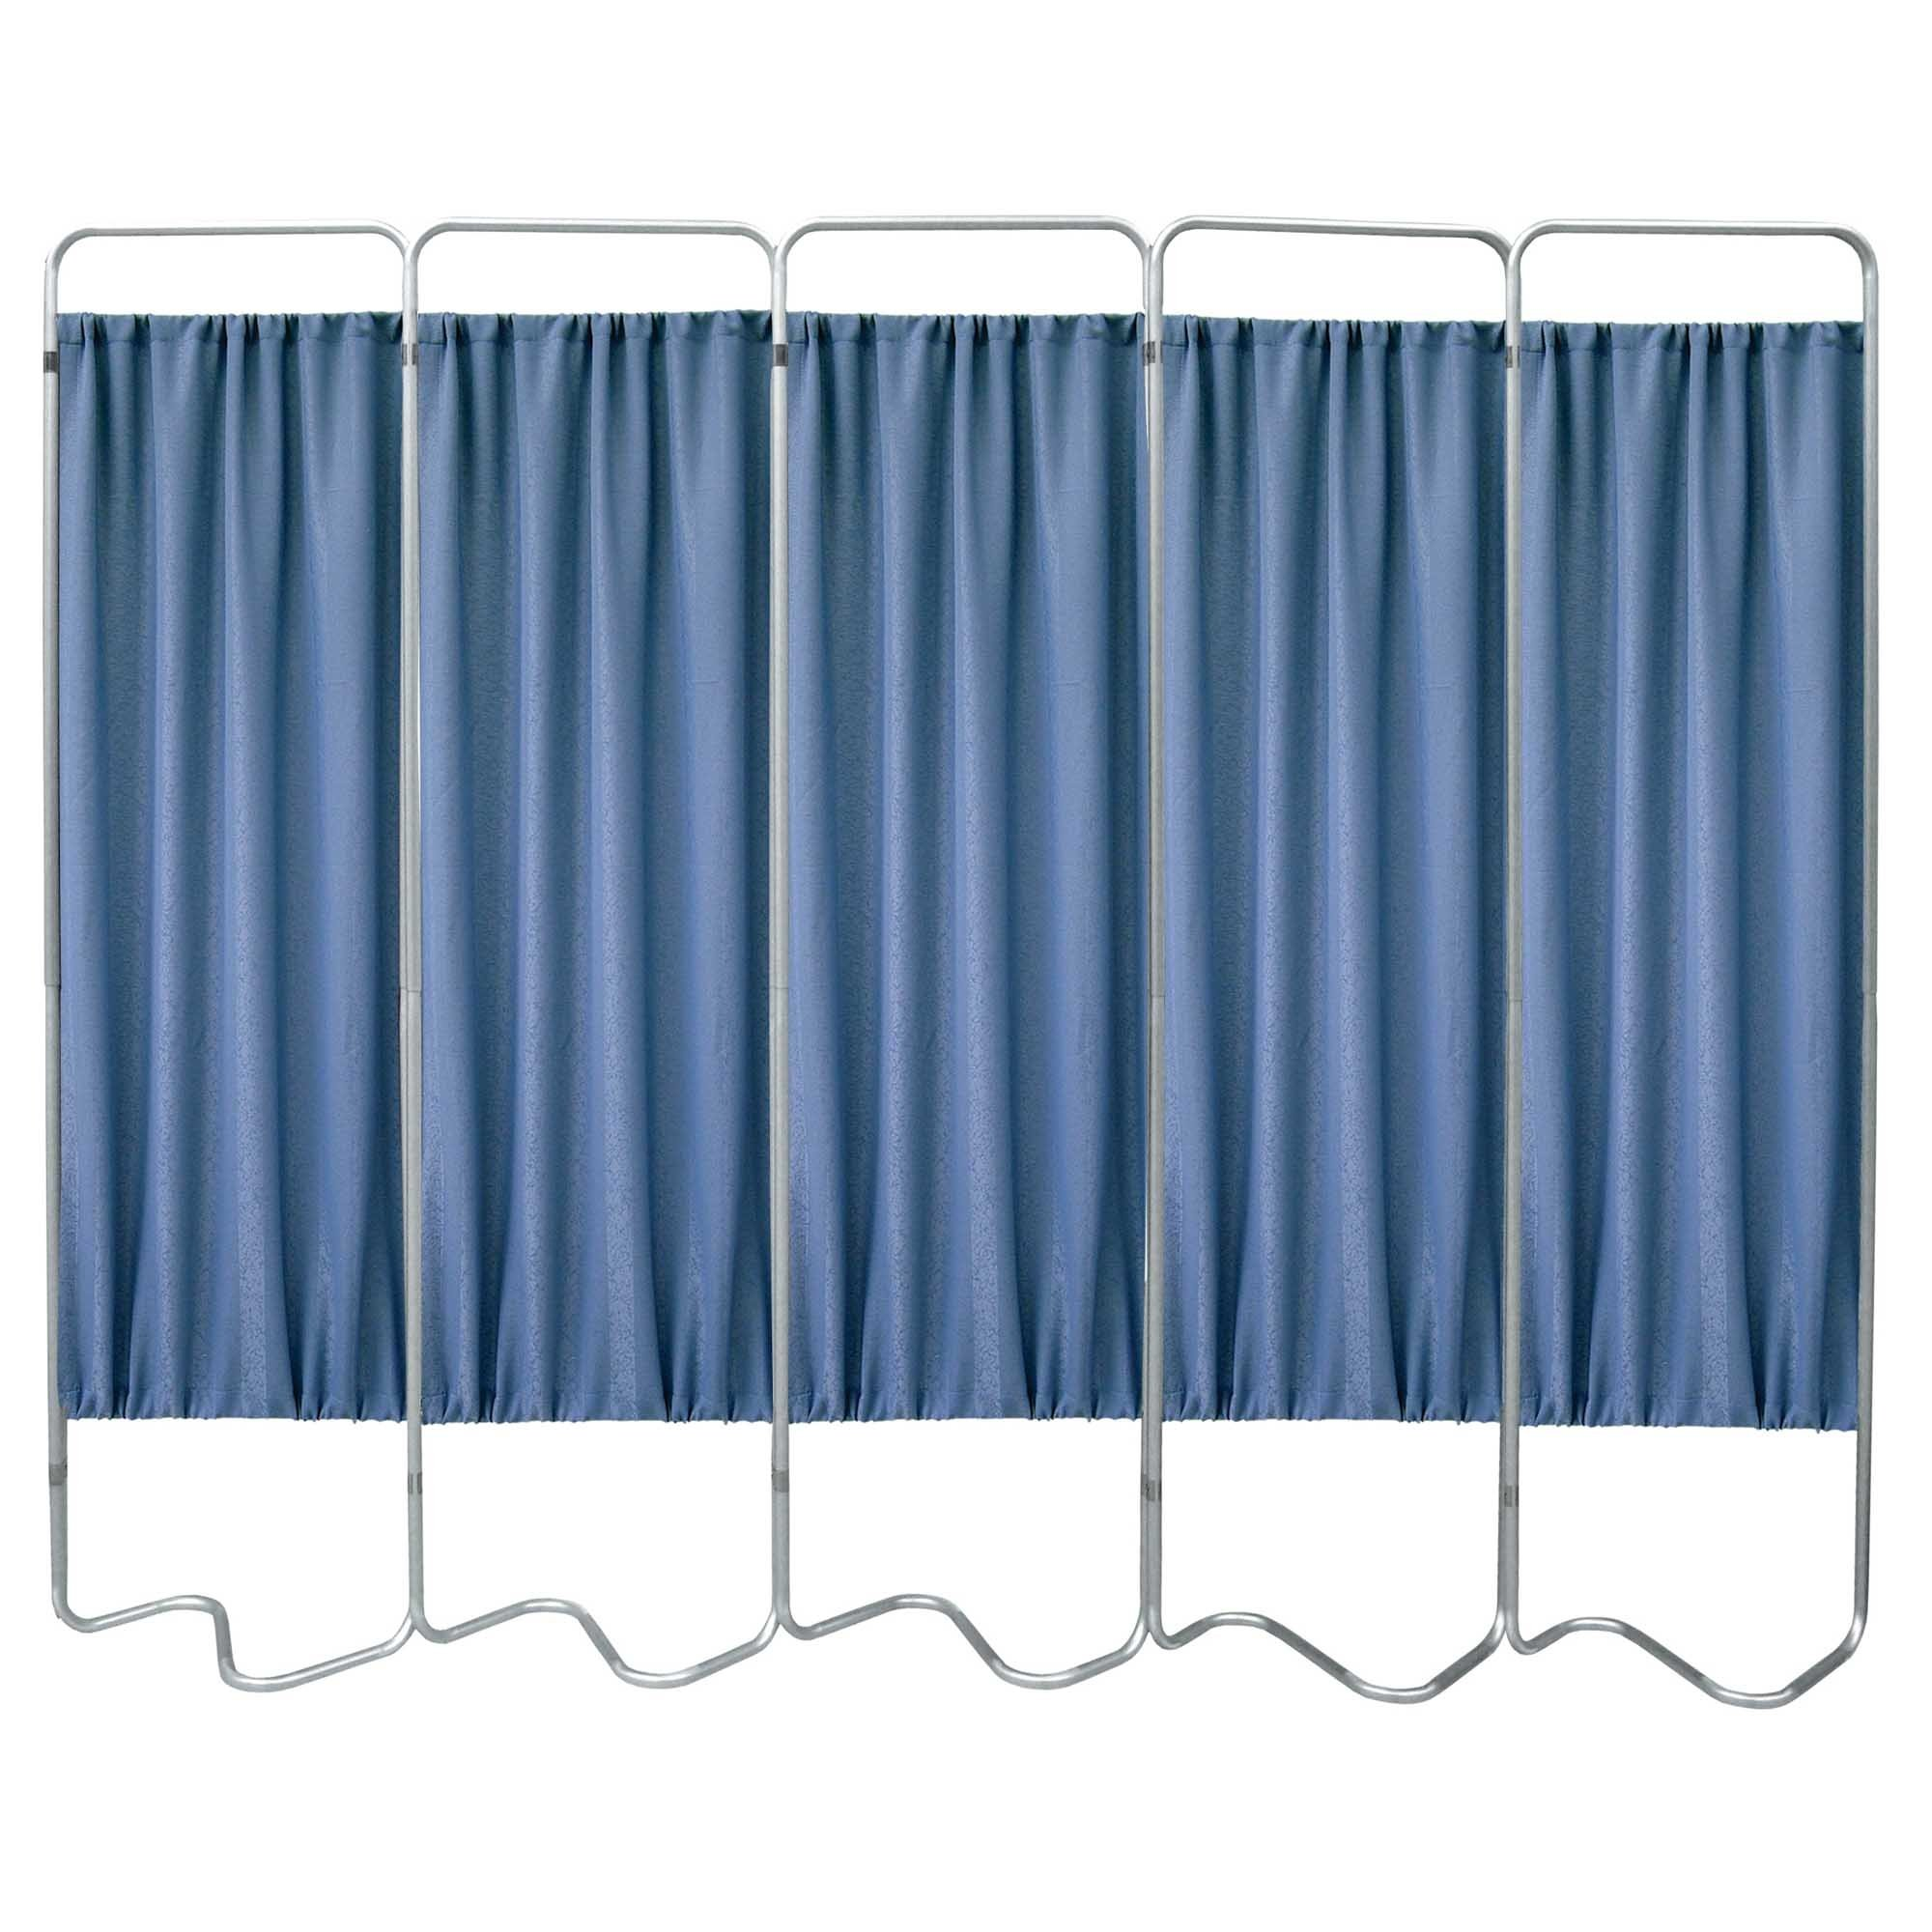 Beamatic 5 Section Folding Privacy Screen - Norway Designer Cloth Screen Panel